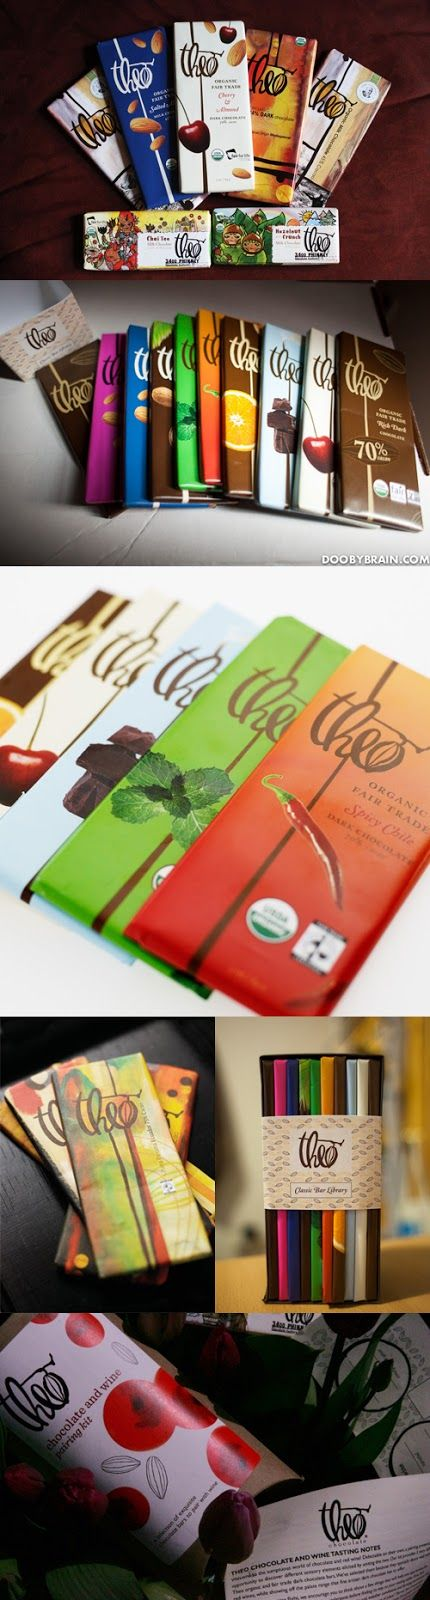 chocolate packaging design to order it contact us.  #emballage #chocolat…